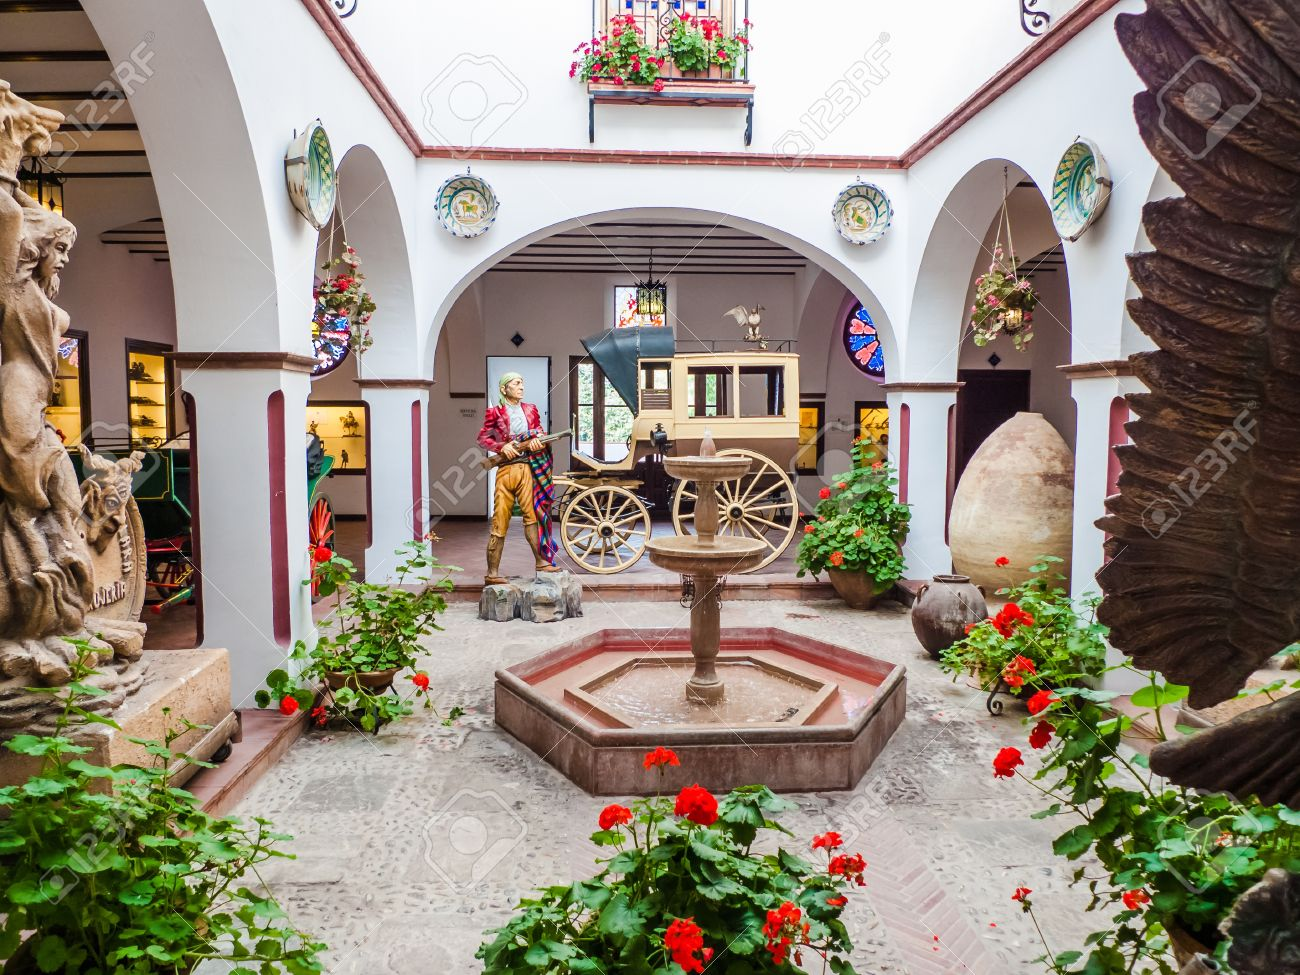 Patio Andaluz In Ronda Museum Stock Photo Picture And Royalty Free